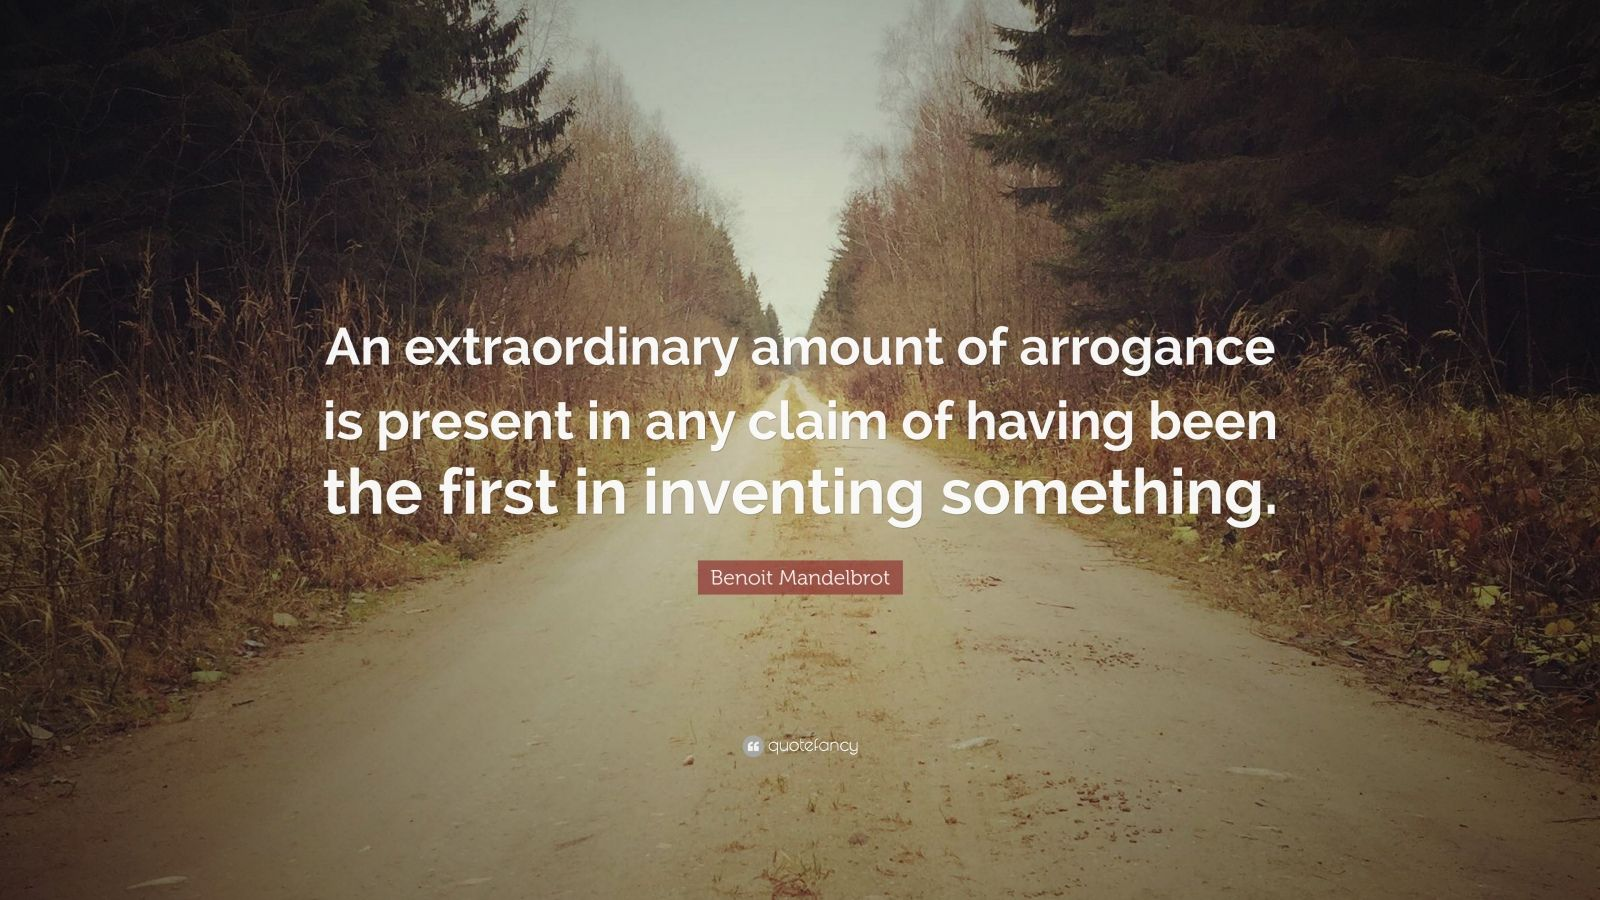 """Benoit Mandelbrot Quote: """"An extraordinary amount of arrogance is present in any claim of having been the first in inventing something."""""""